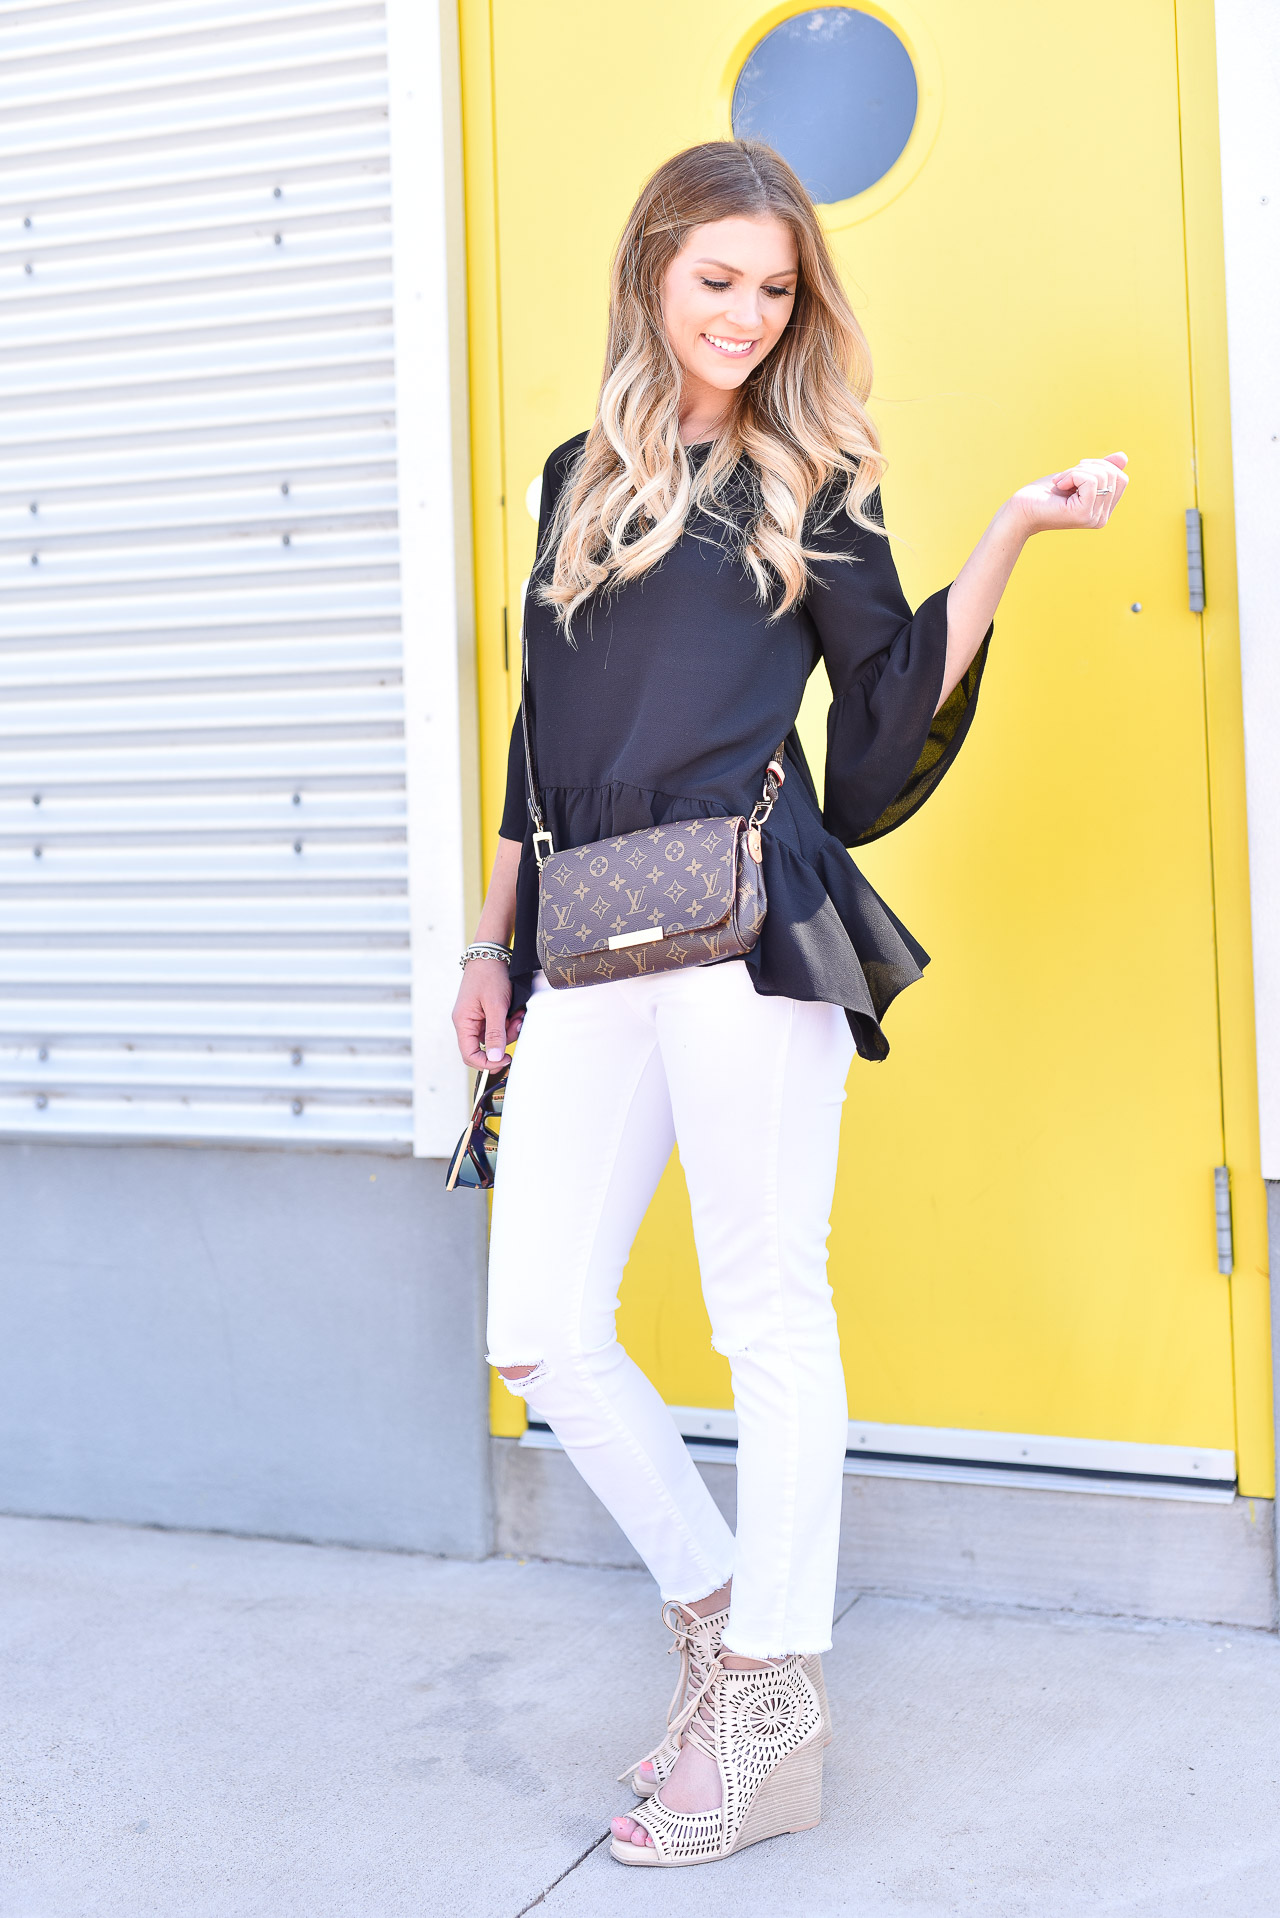 10 Closet Staples Every Woman Needs // Wardrobe Essentials // Black Gibston Ruffle Top Nordstrom